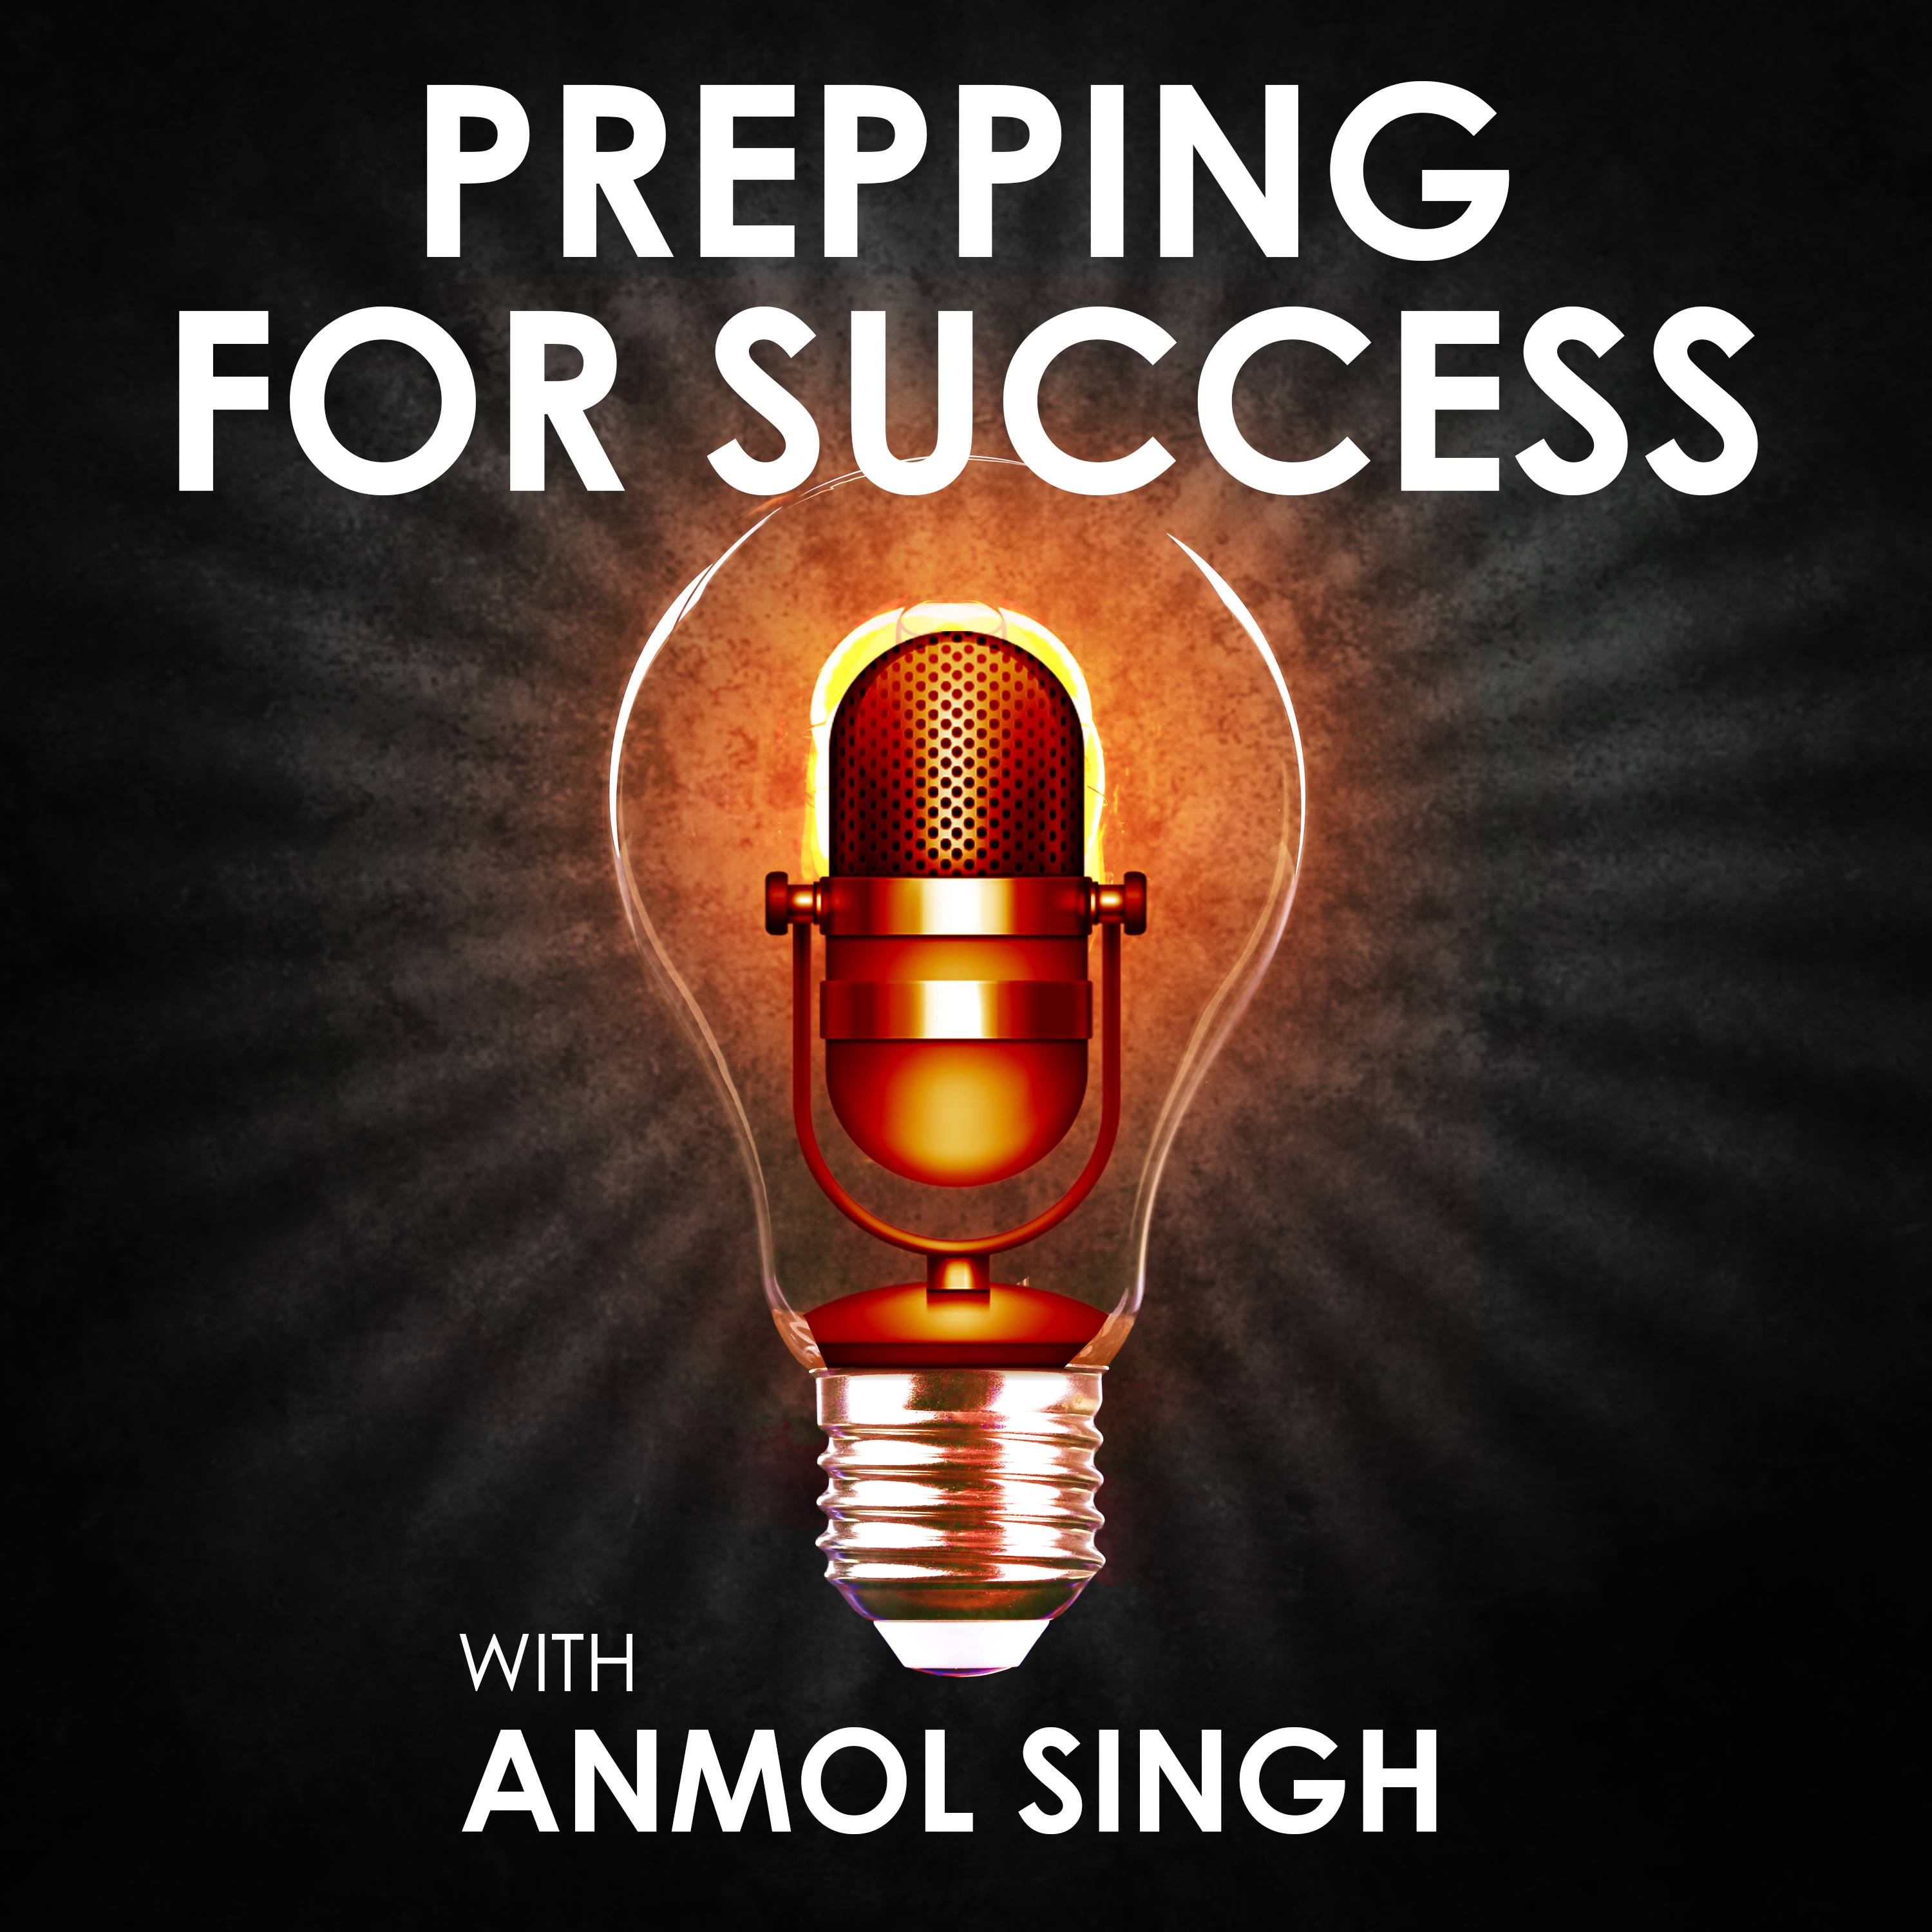 Artwork for podcast Prepping For Success